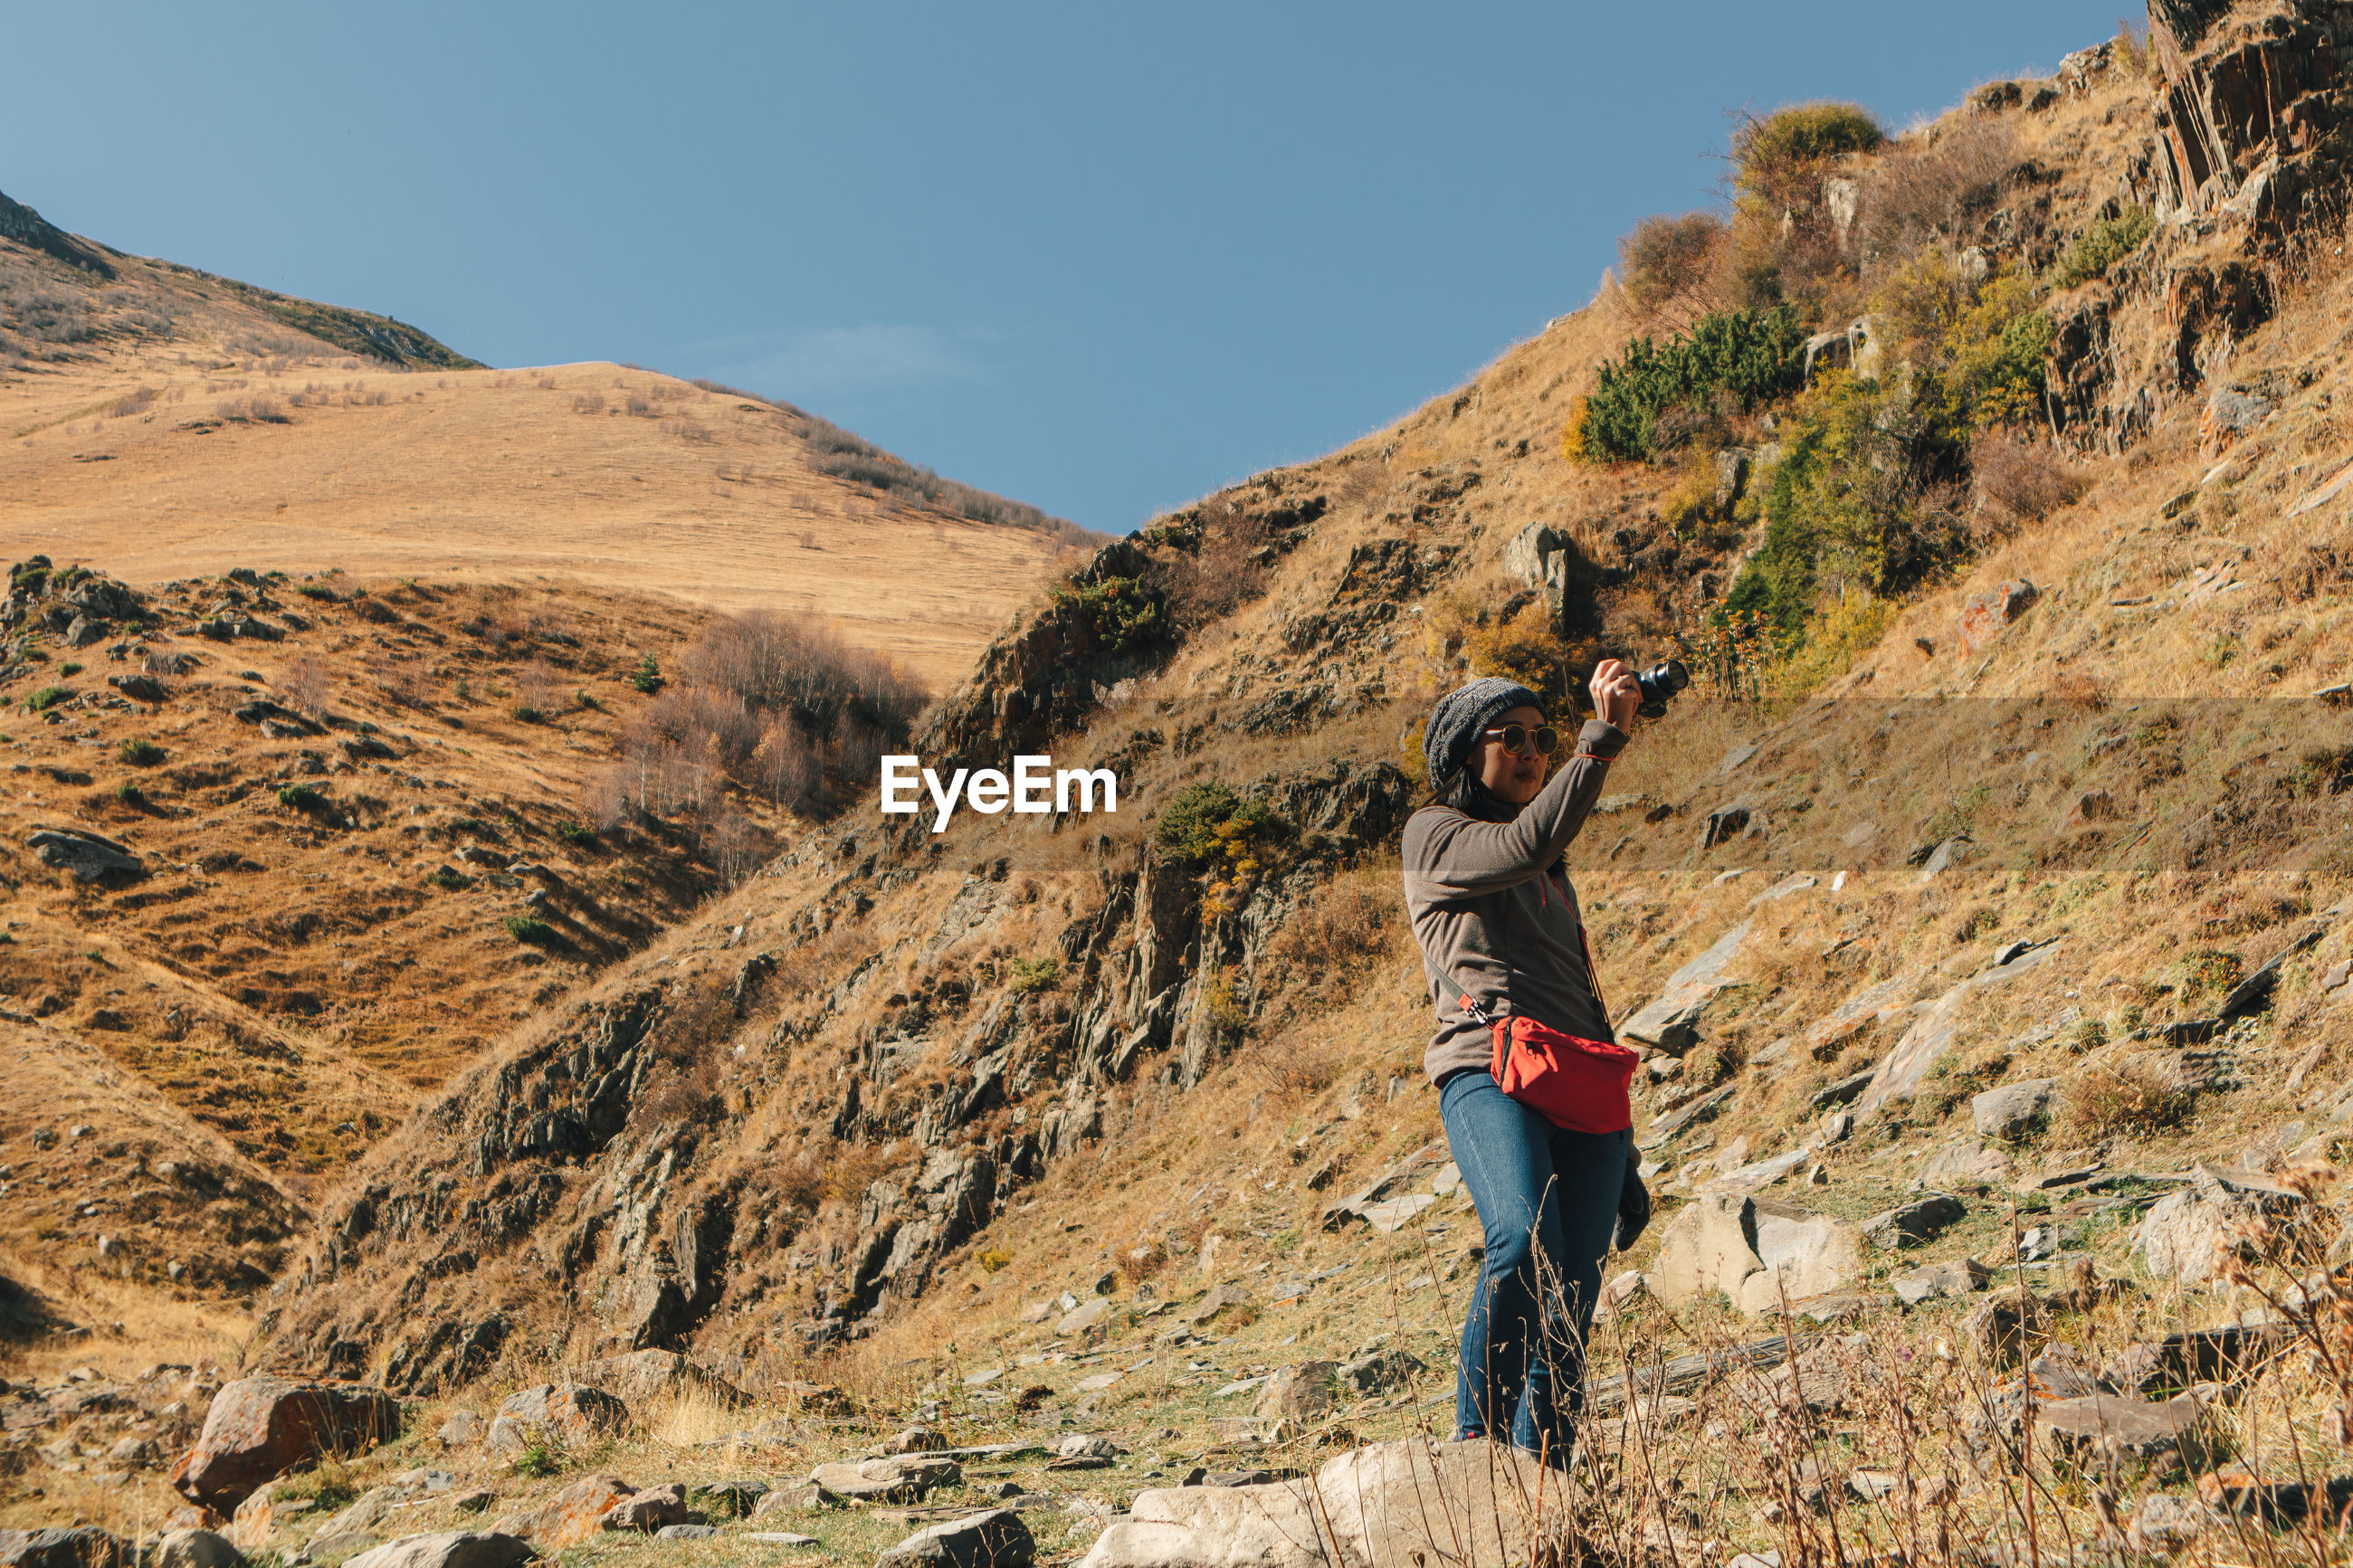 Rear view of man photographing on mountain against sky